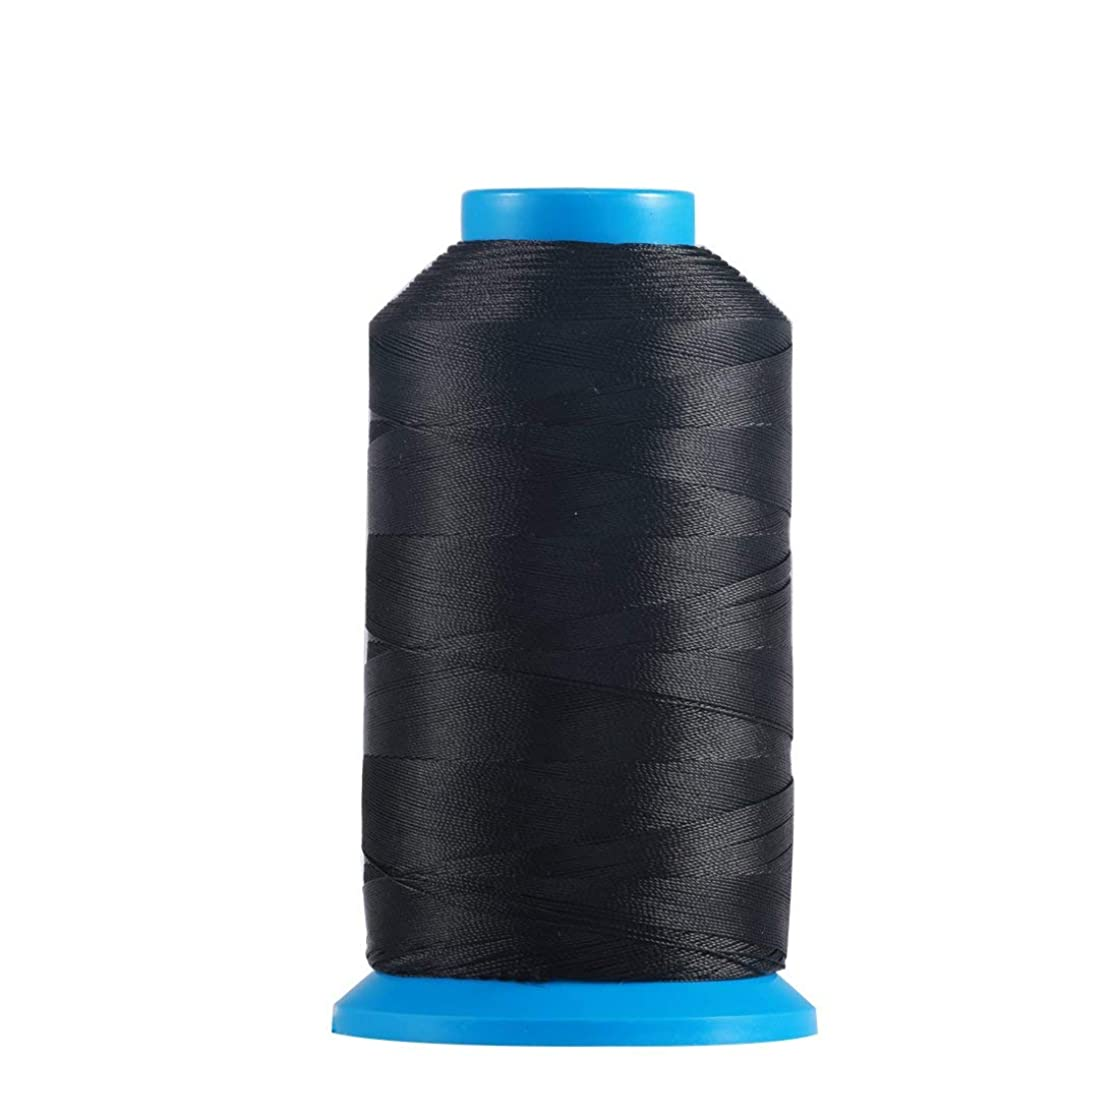 Meikeer Bonded Nylon Sewing Thread Size #69 T70 210D/3 1500 Yard,for Outdoor Leather Bag Shoes Canvas Upholstery (Black)